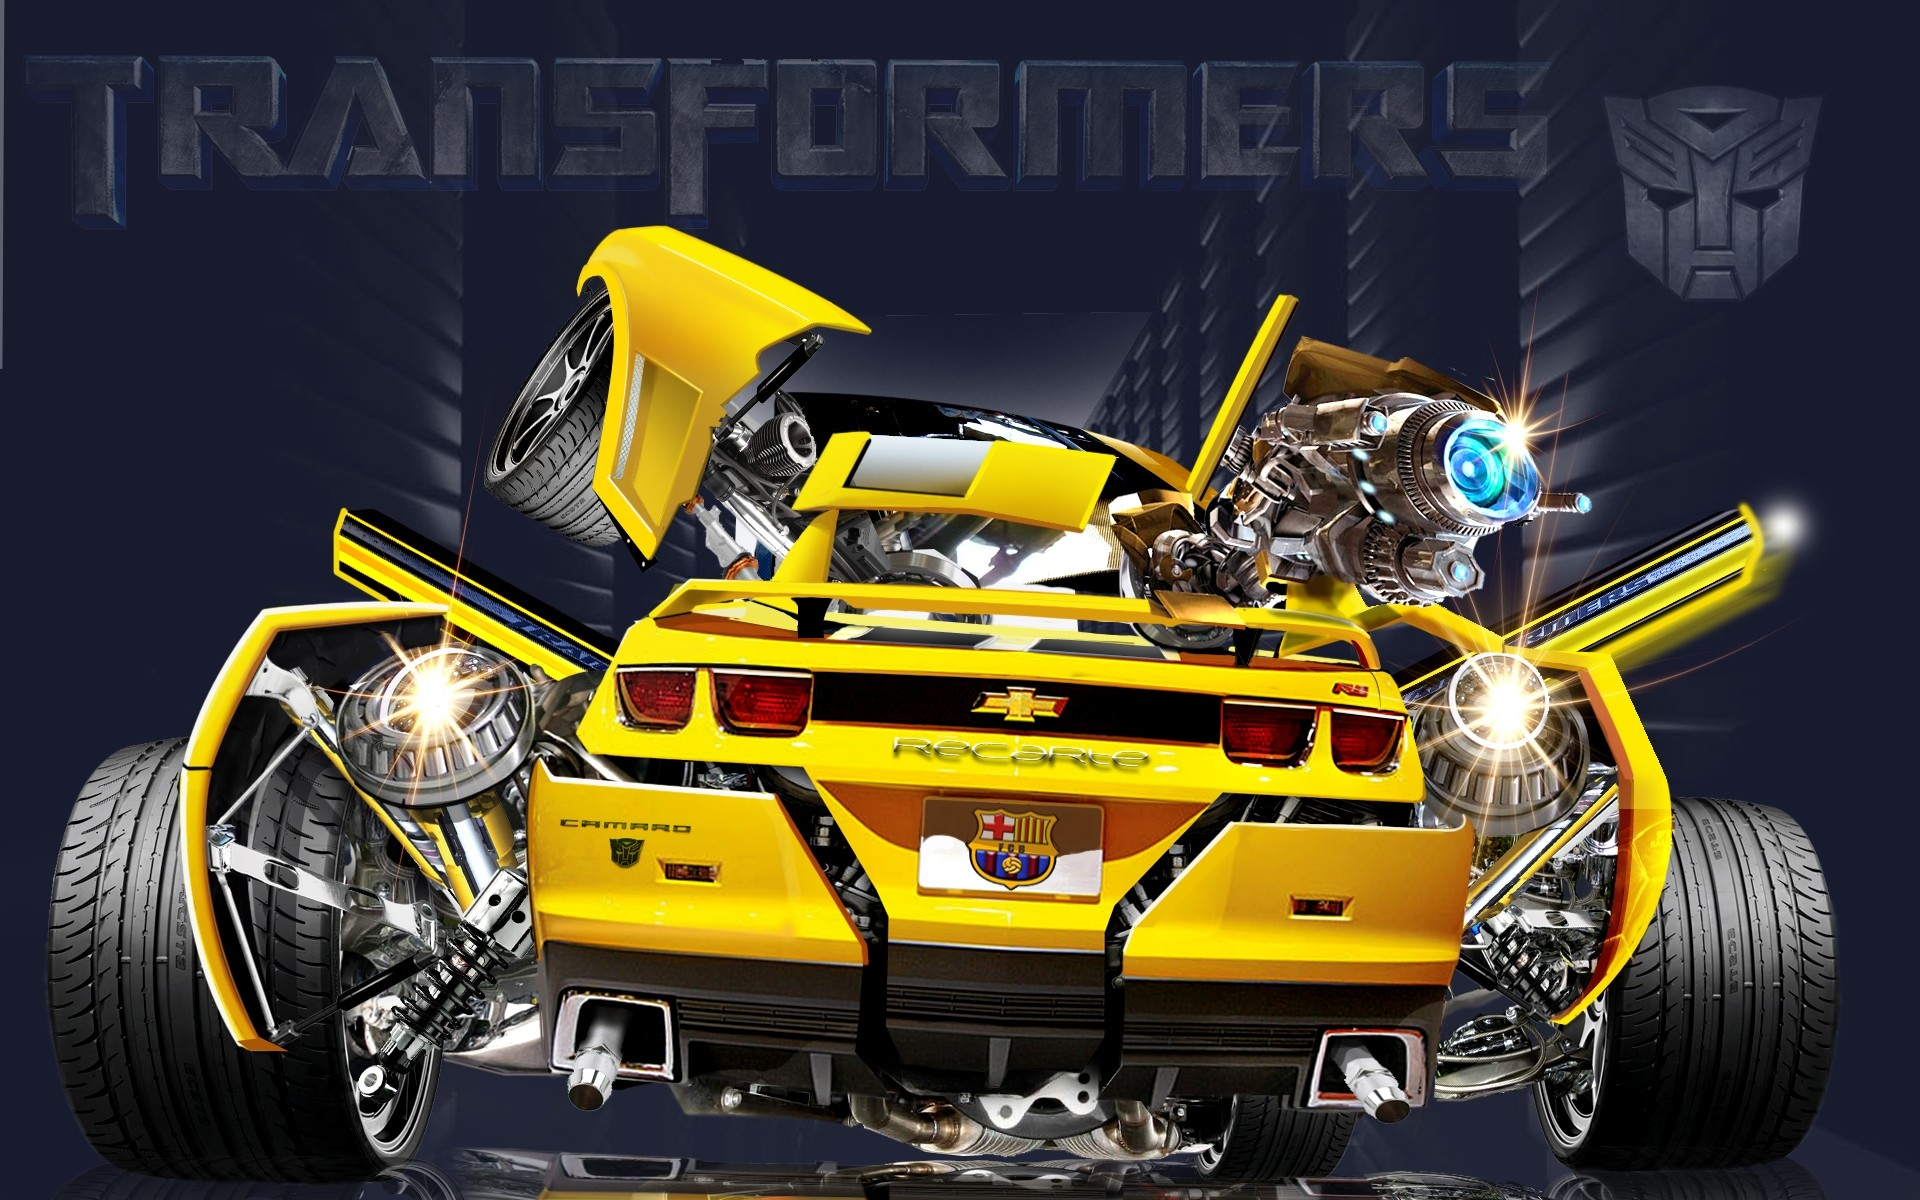 Transformers Bumblebee Wallpaper 183 ①